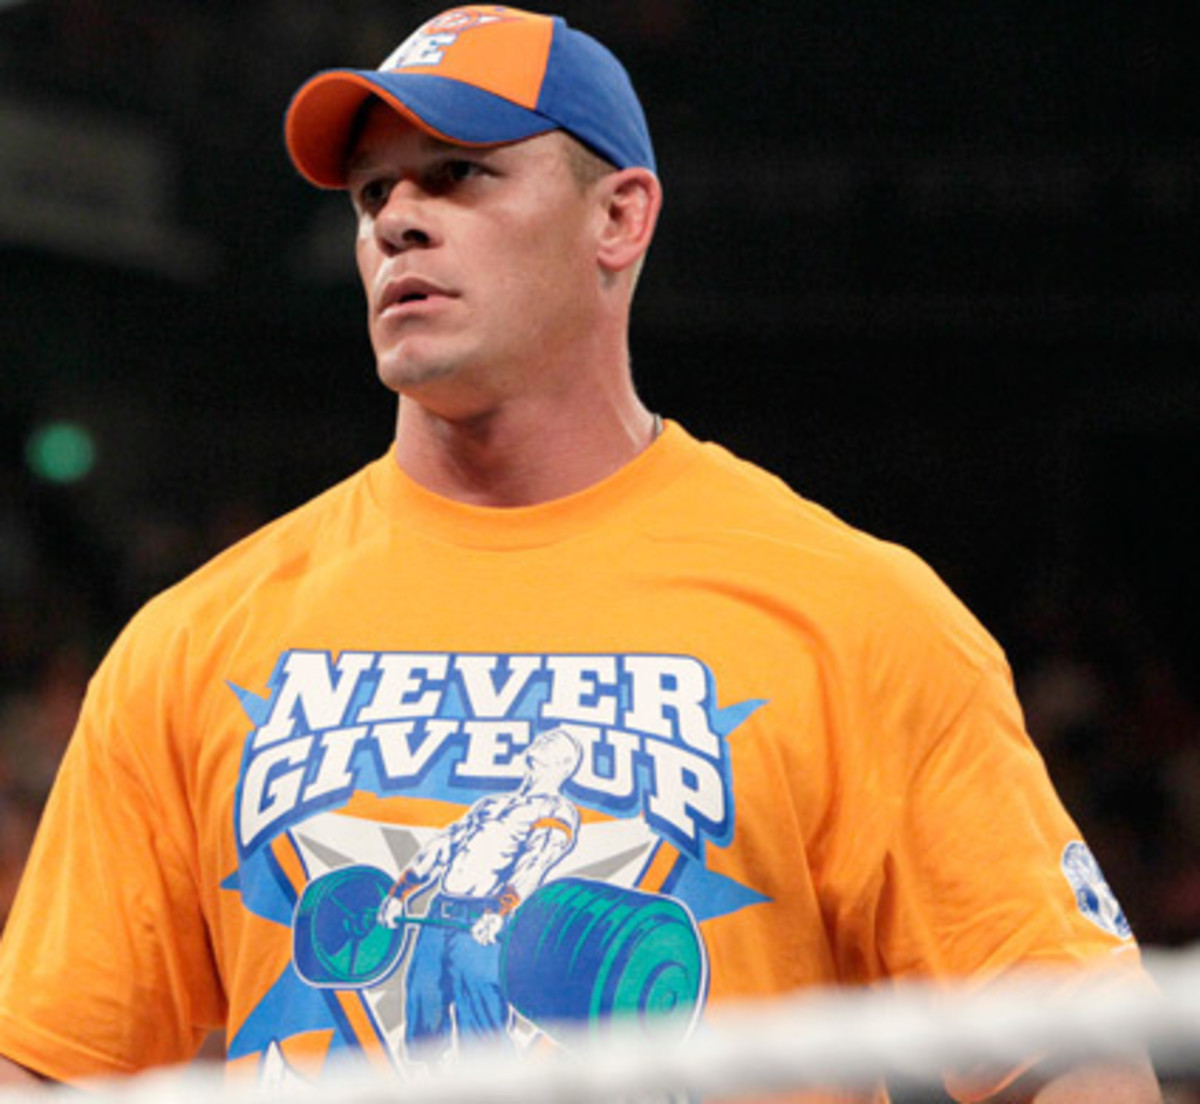 John Cena has been the WWE's top superstar for the past several years.